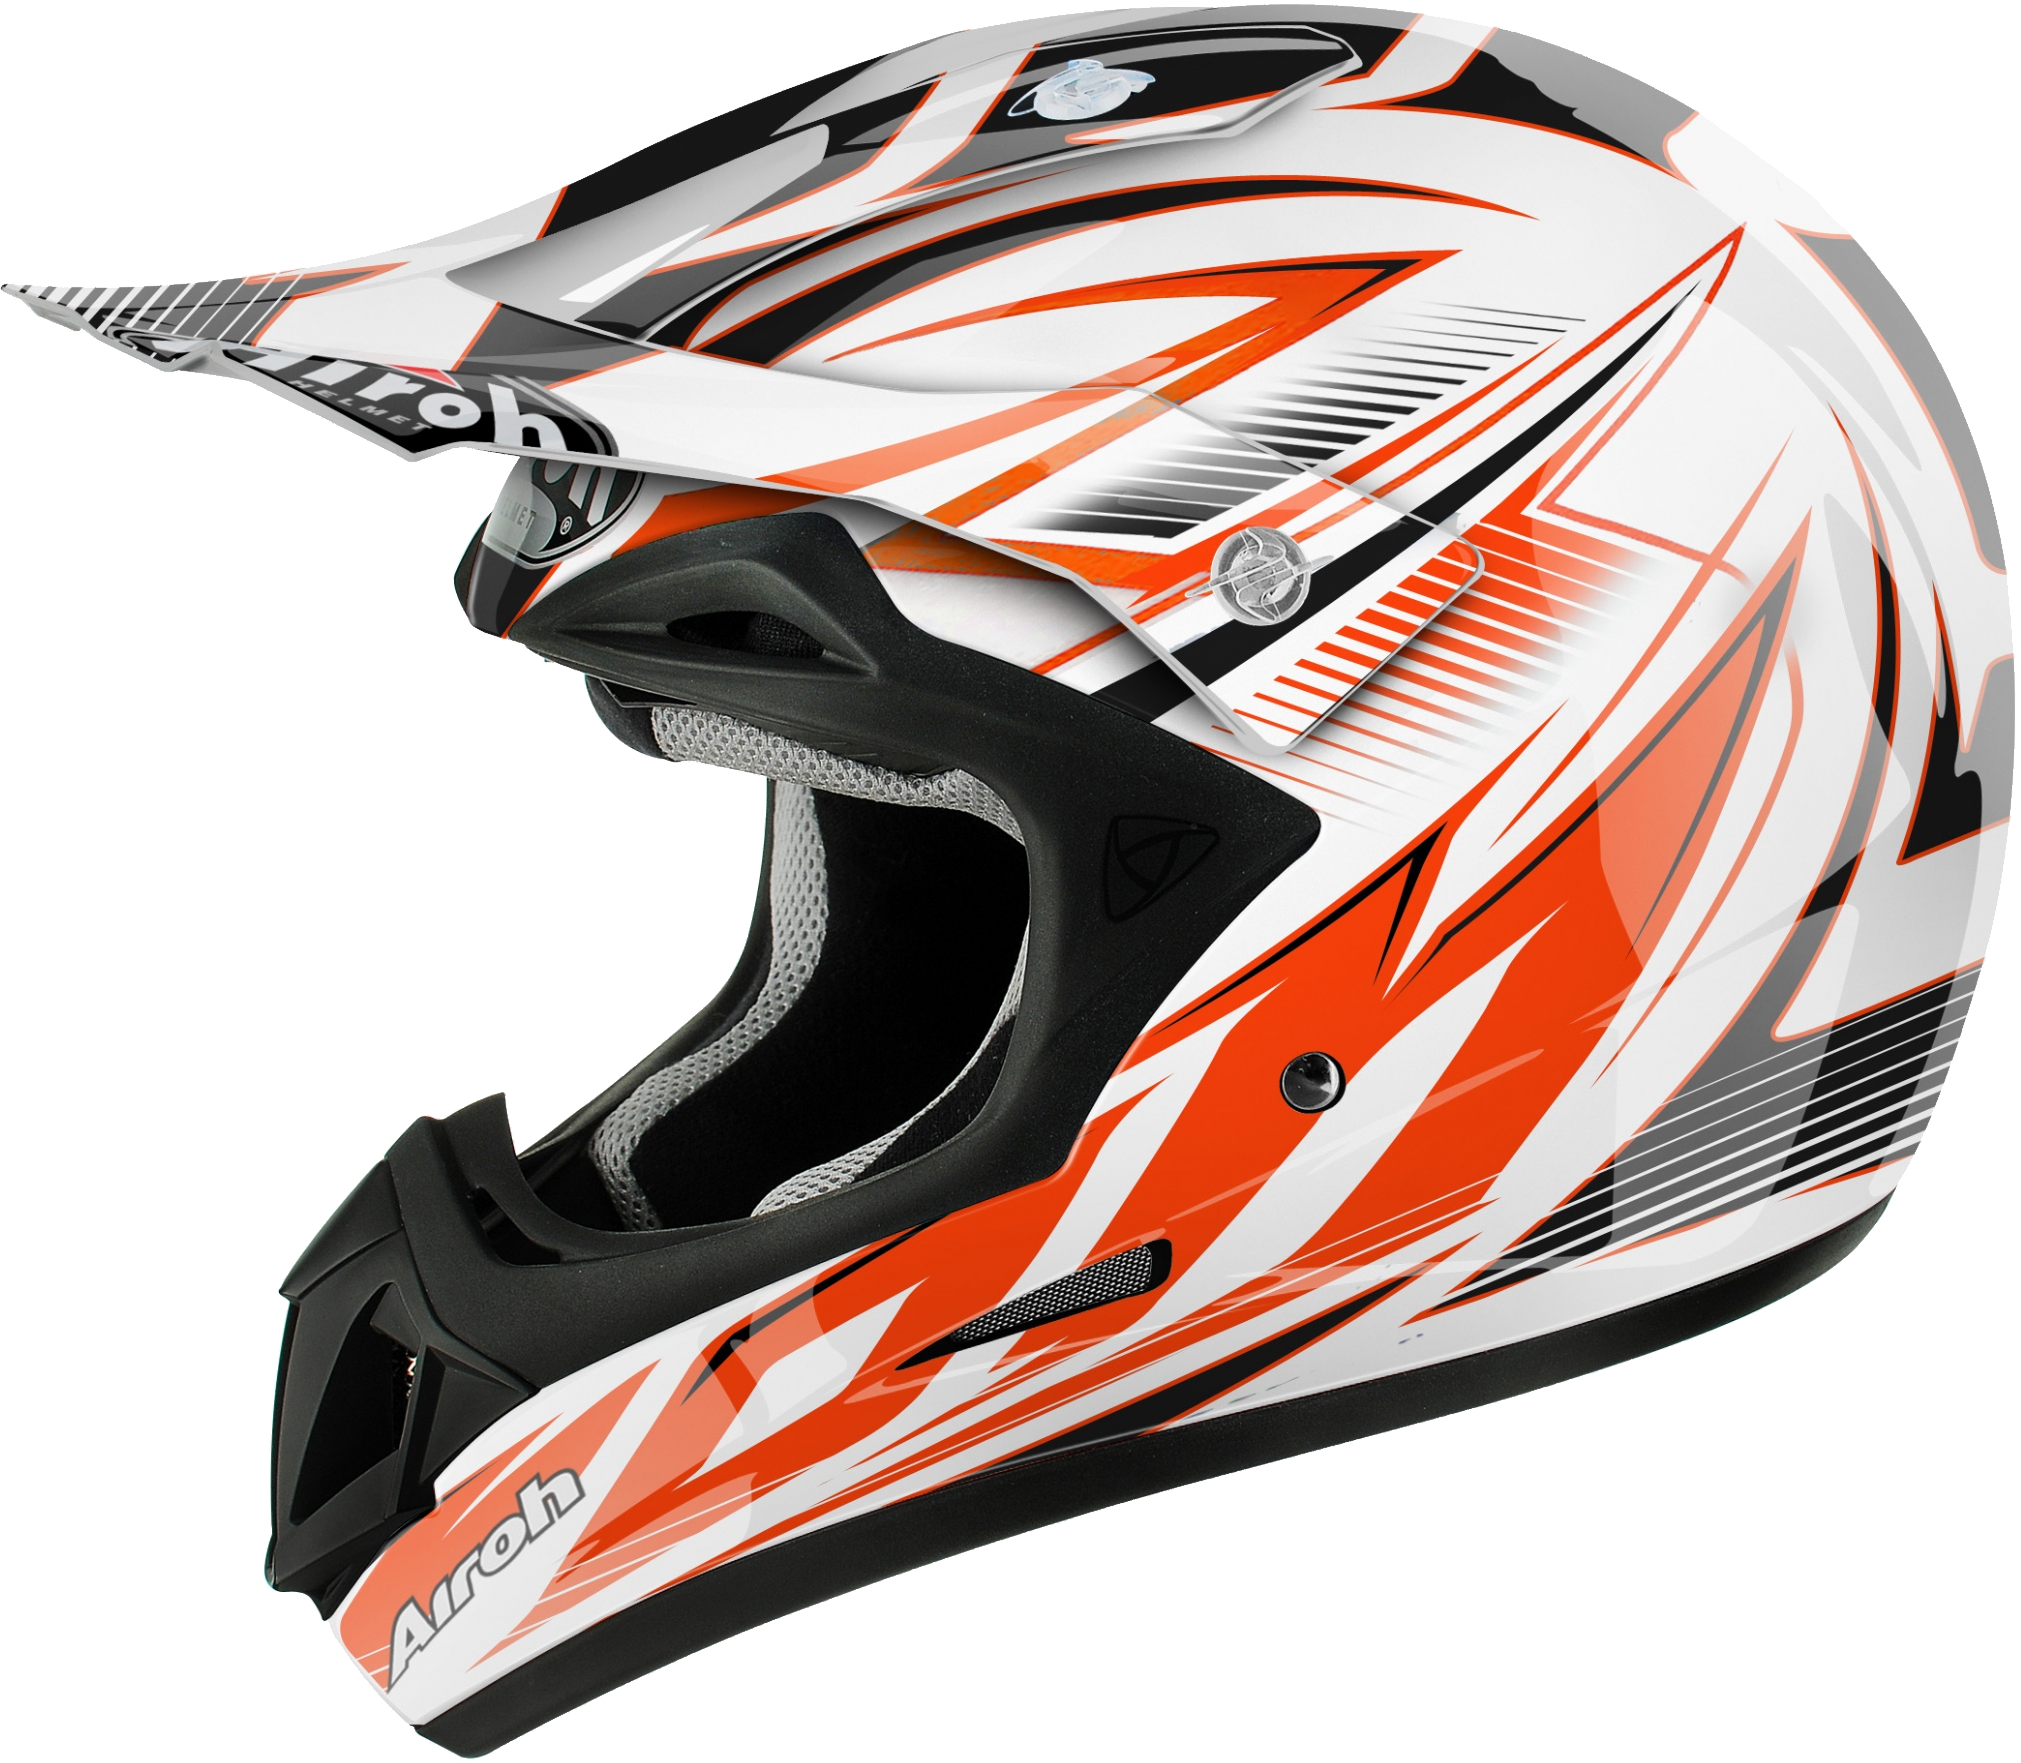 Full face bicycle helmet PNG image - Motorcycle Helmet PNG HD